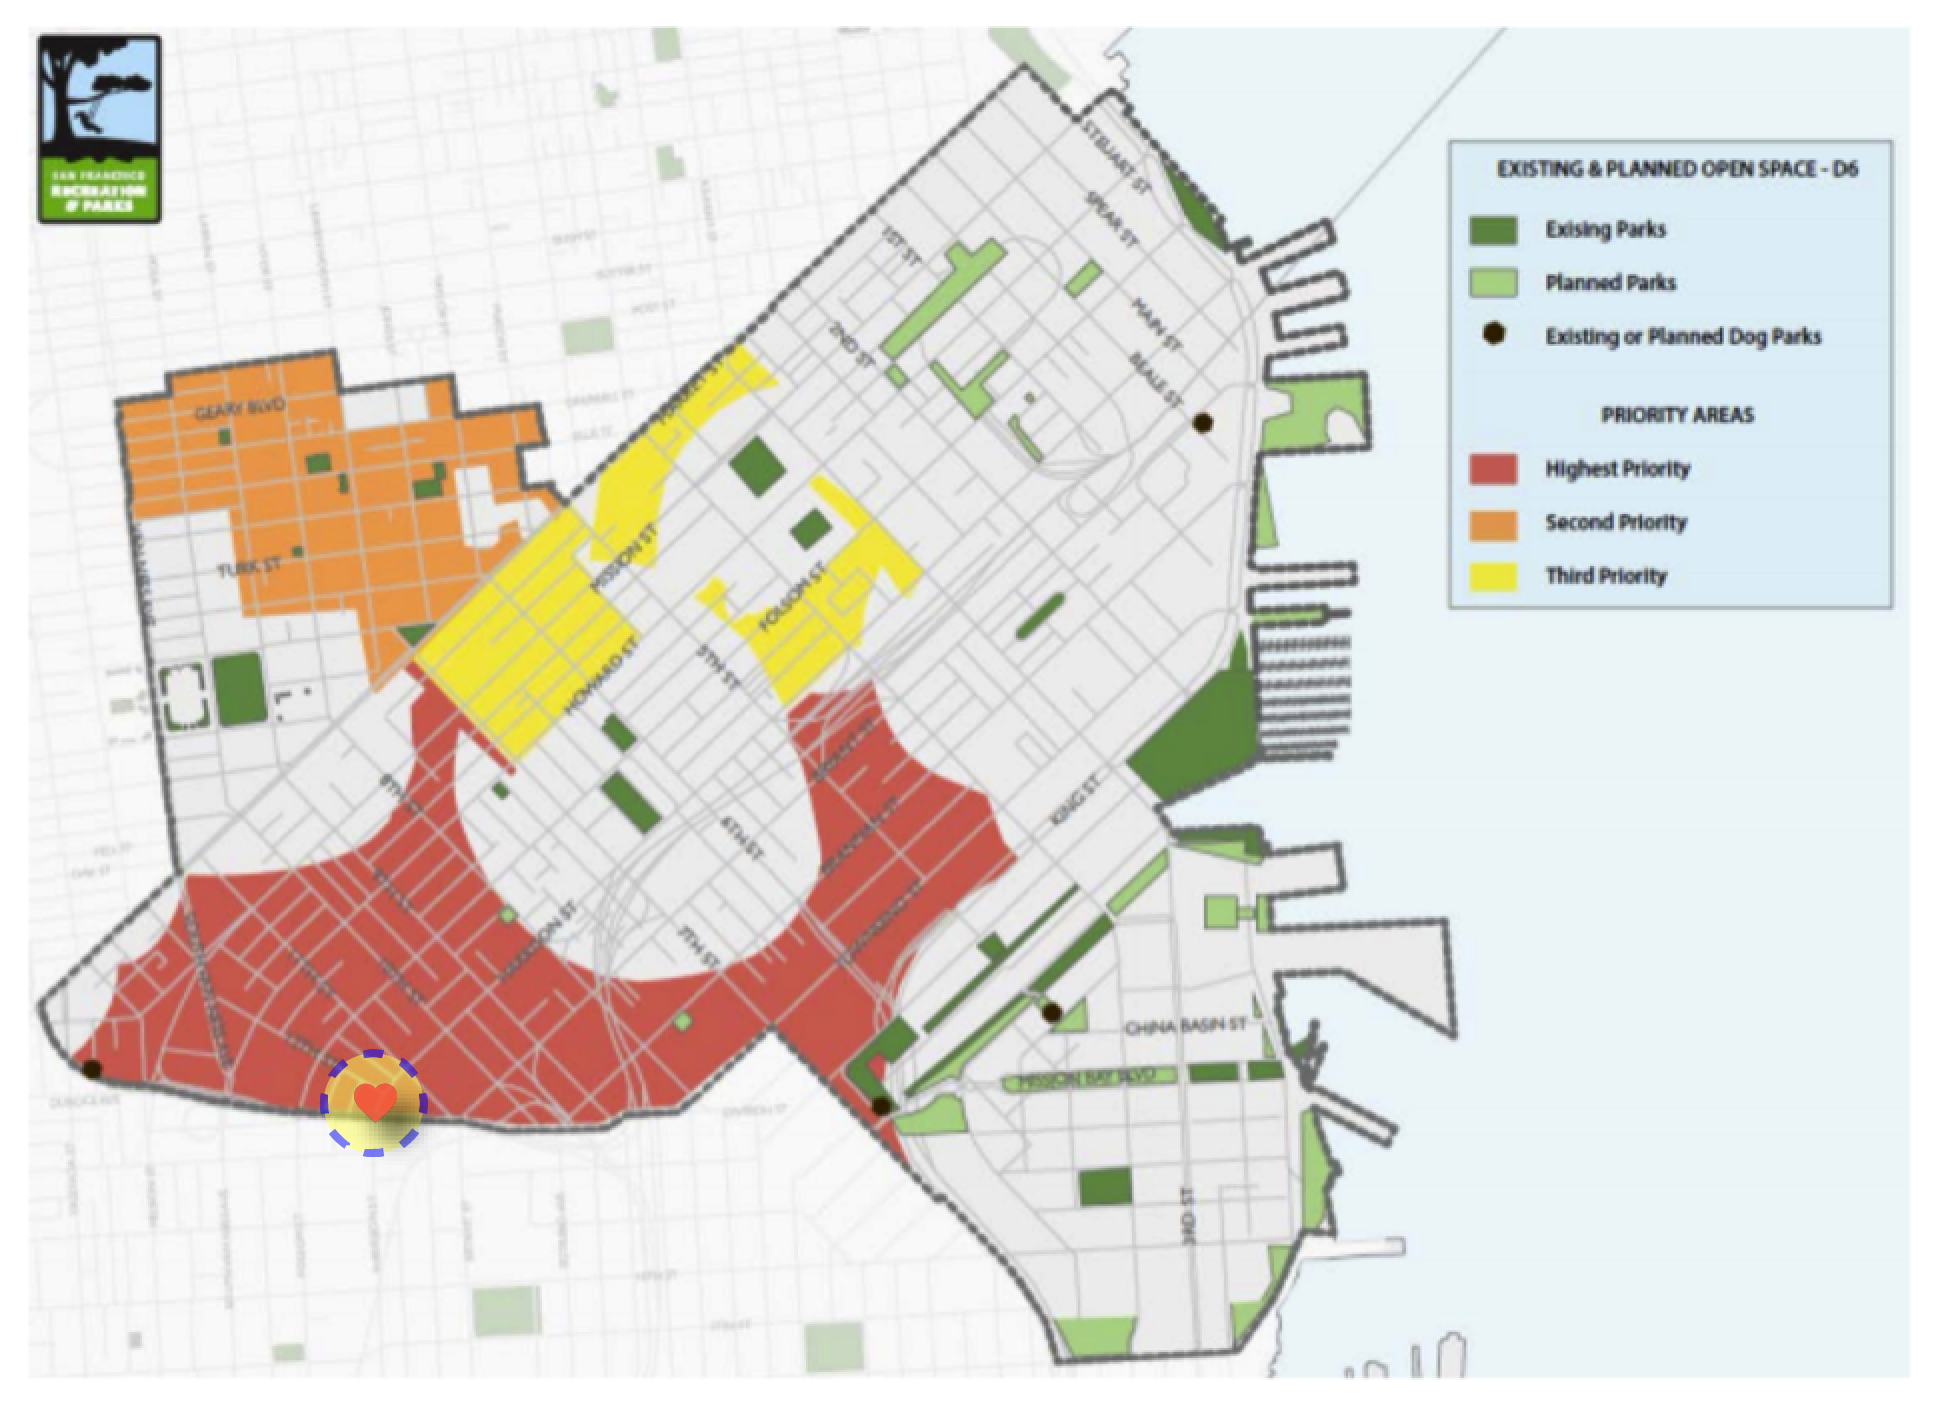 Western SoMa classified as the area of highest priority for new open spaces in District 6